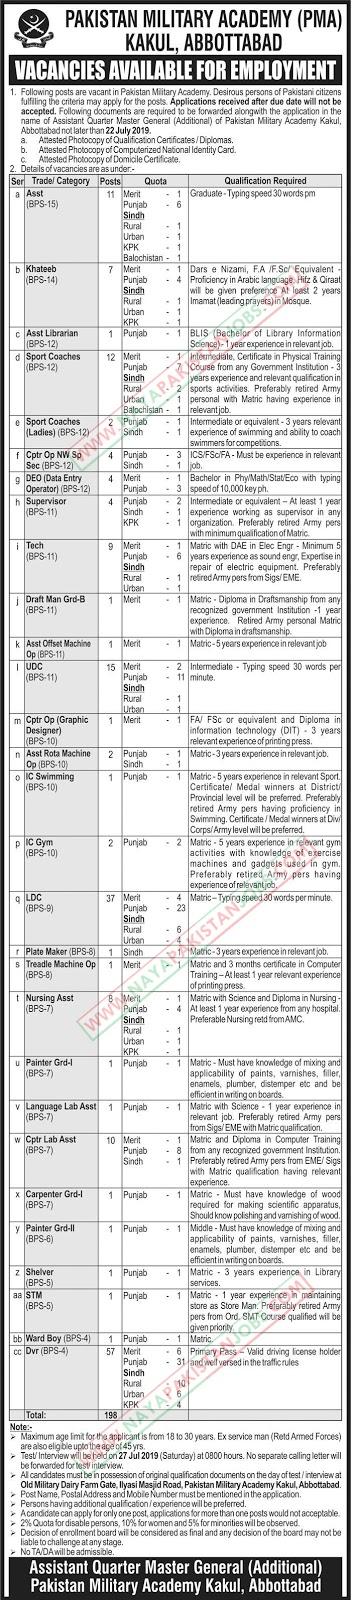 Pakistan Military Academy PMA Kakul Jobs 2019 | Join PMA